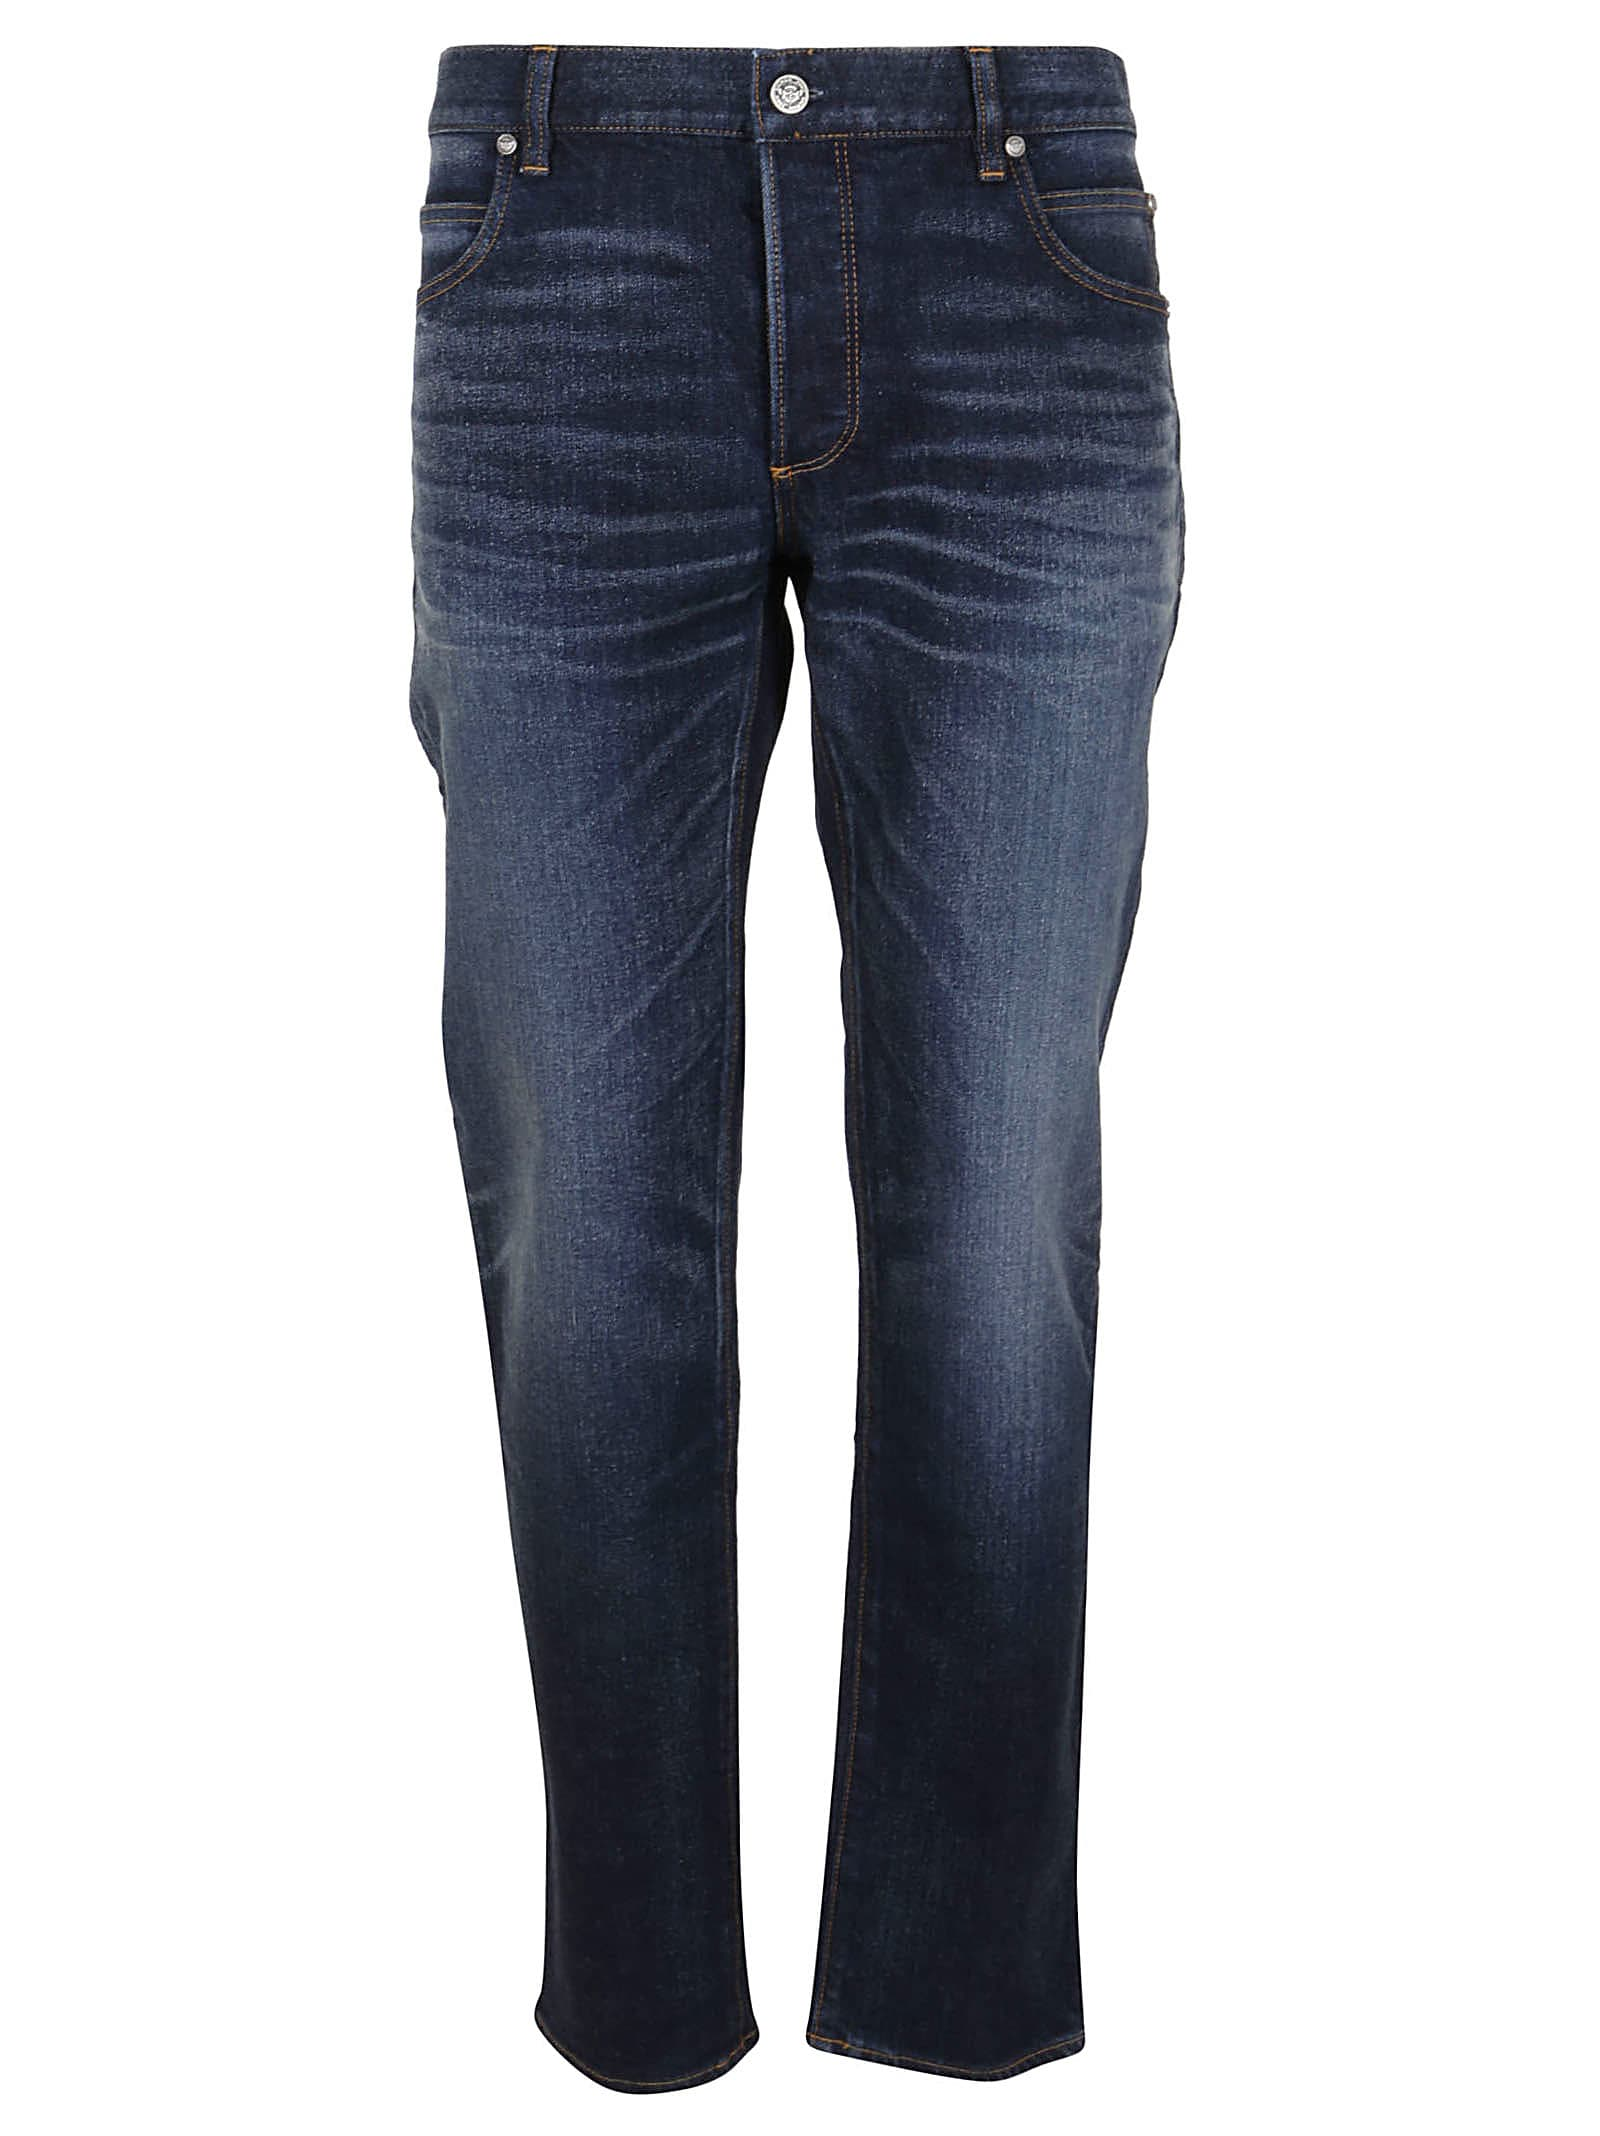 Balmain Tapered jeans B EMBROIDERED TAPERED JEANS-RAW VINTAGE